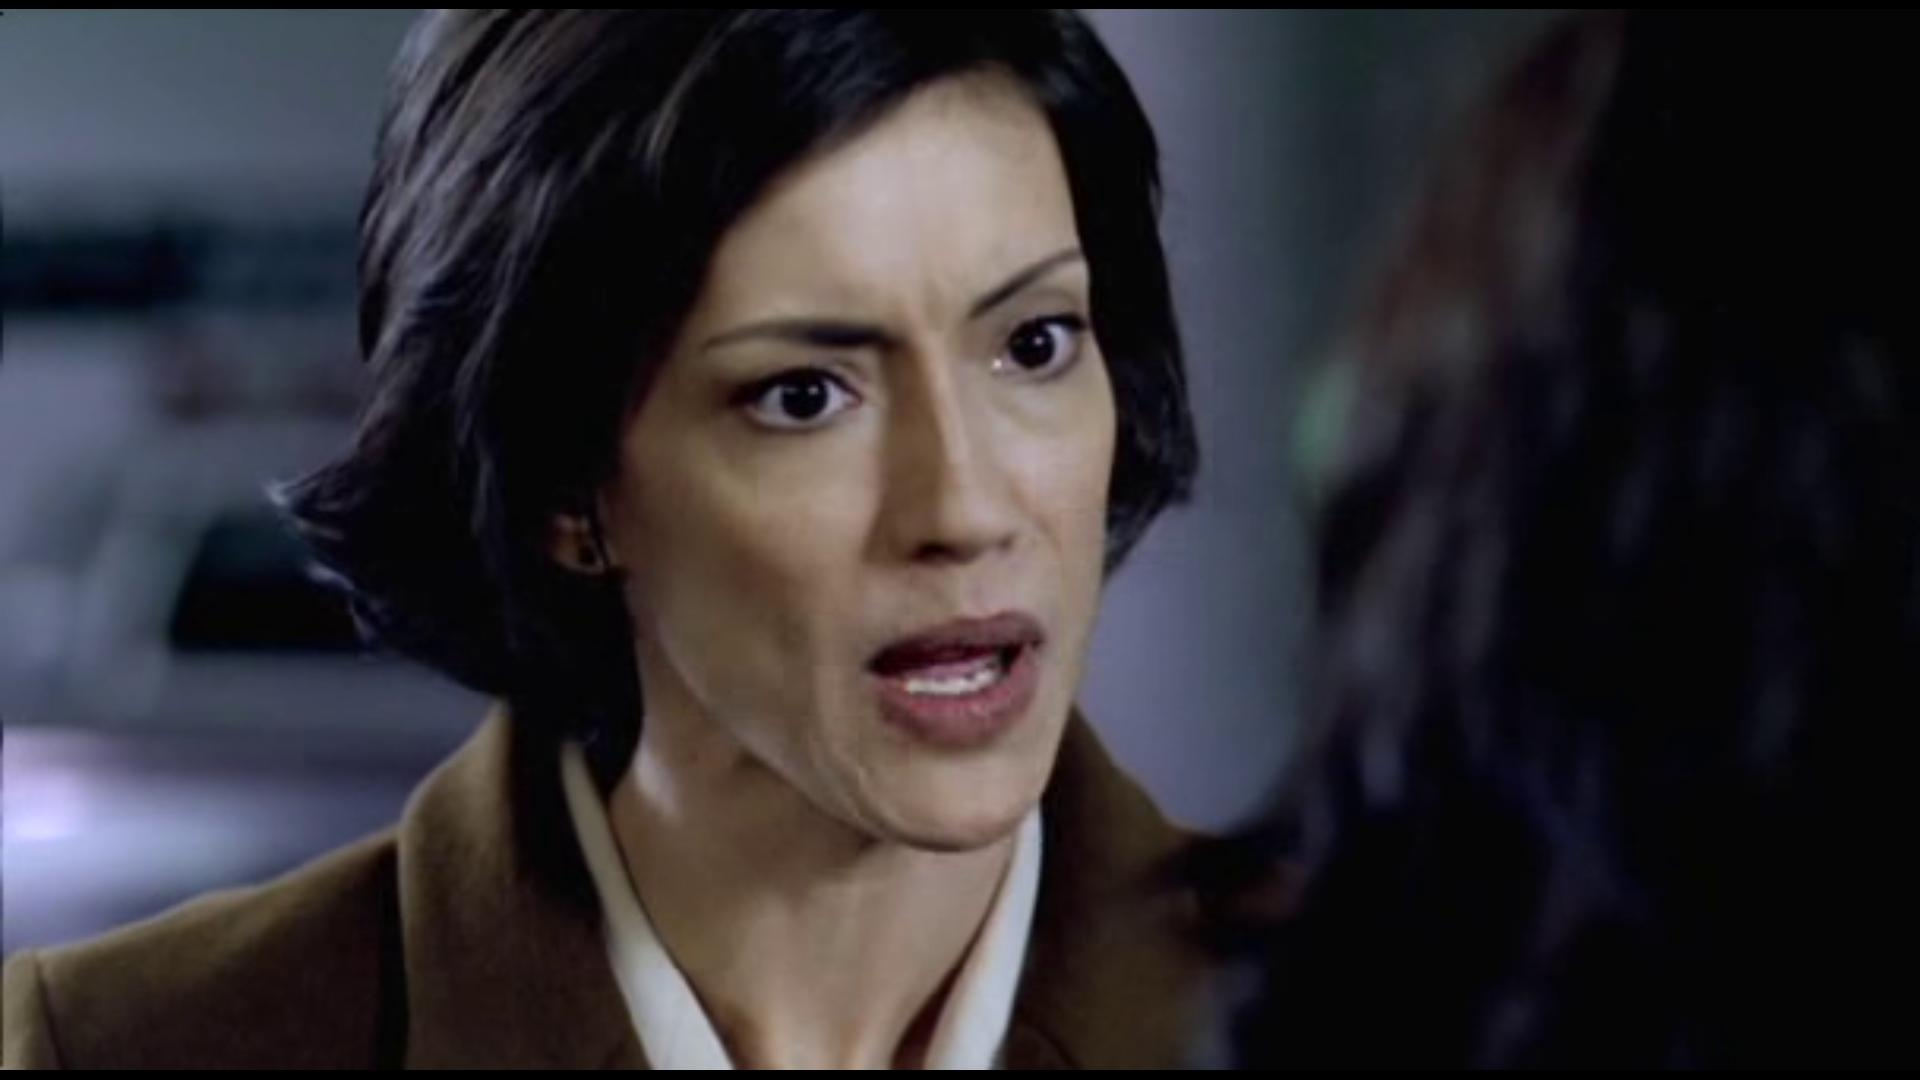 Jocelyn Seagrave in Thoughtcrimes (2003)